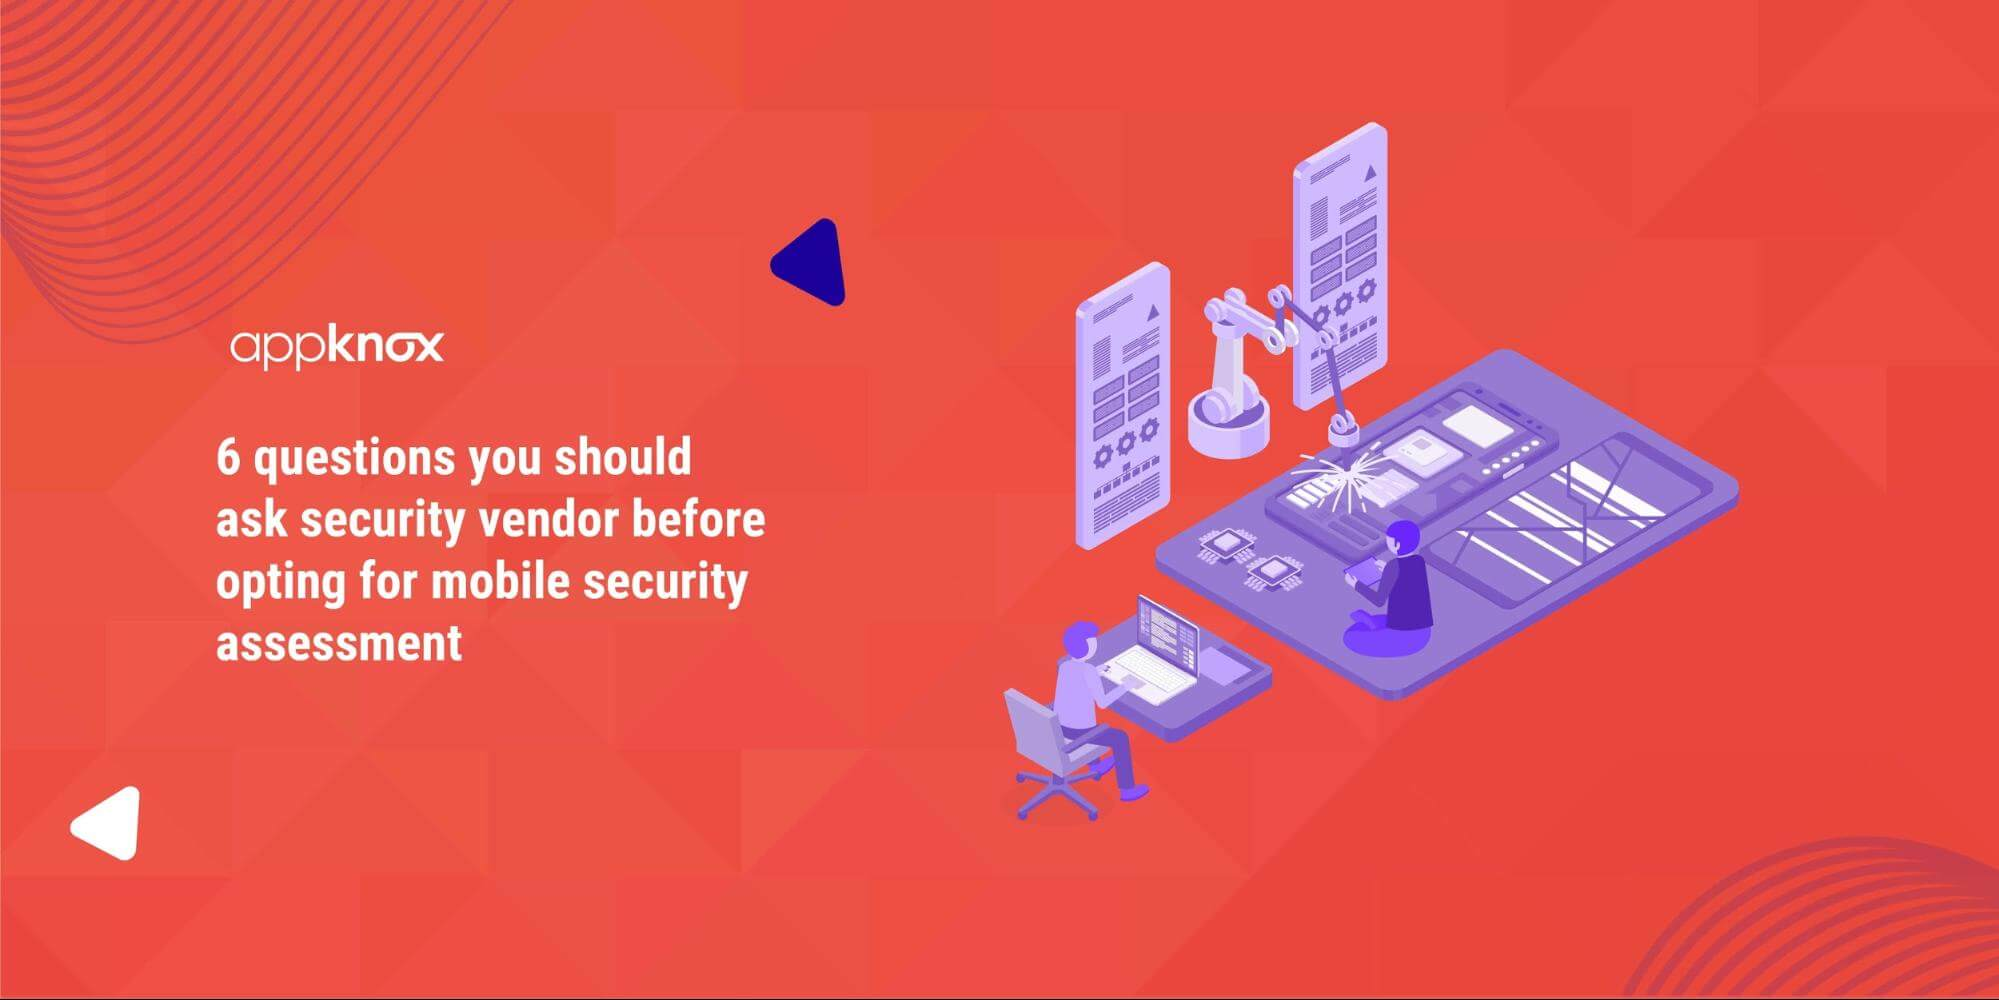 6 questions you should ask security vendor before opting for mobile security assessment